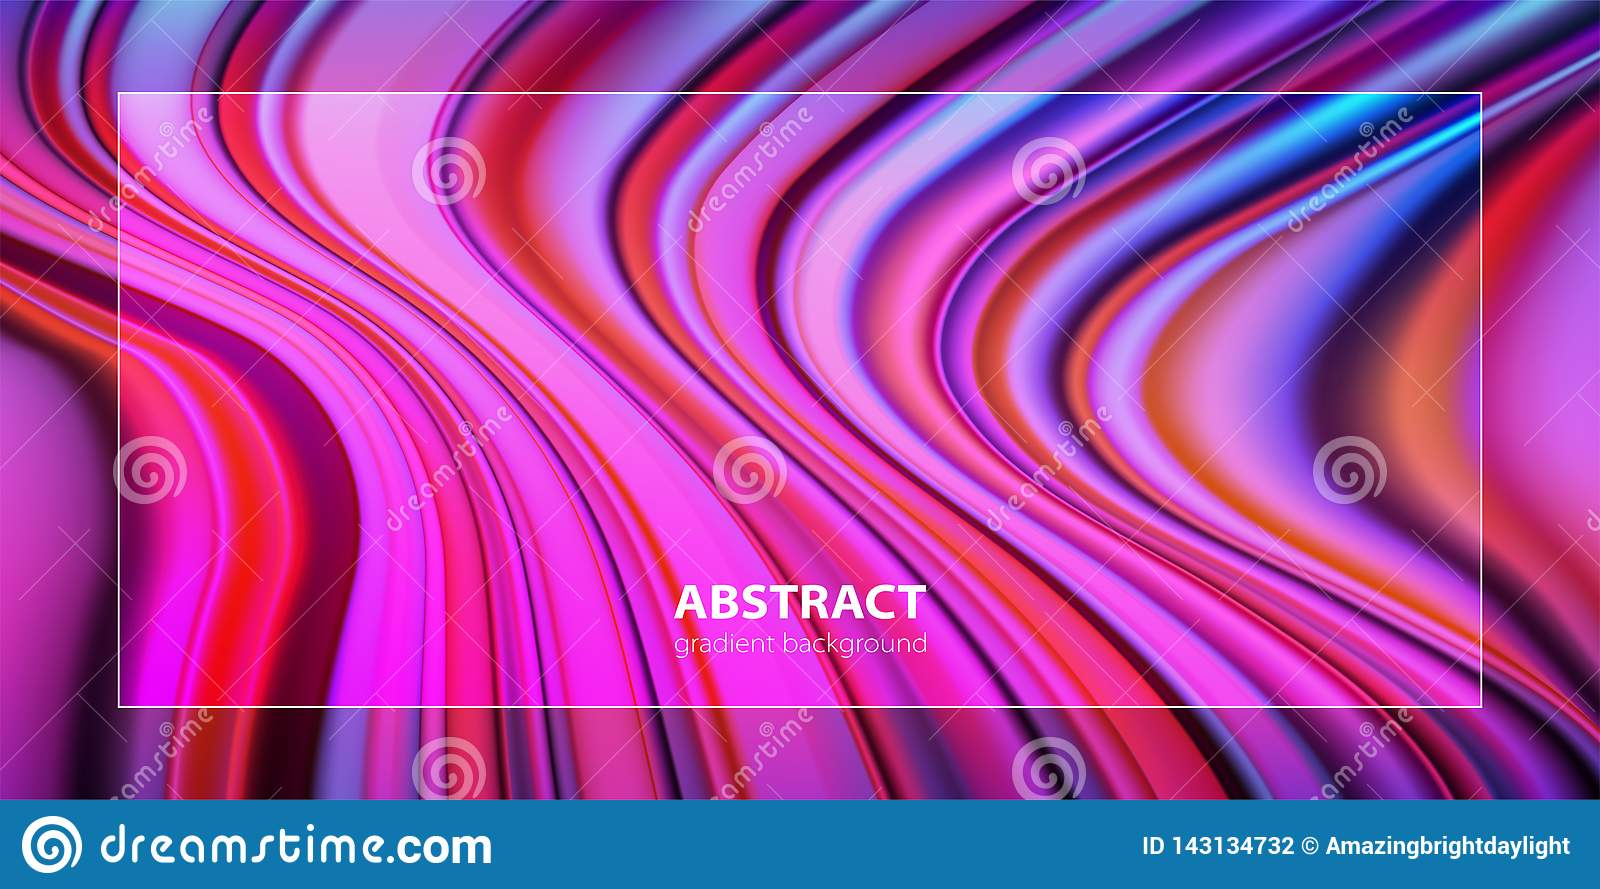 Abstract gradient color background design. Futuristic design posters